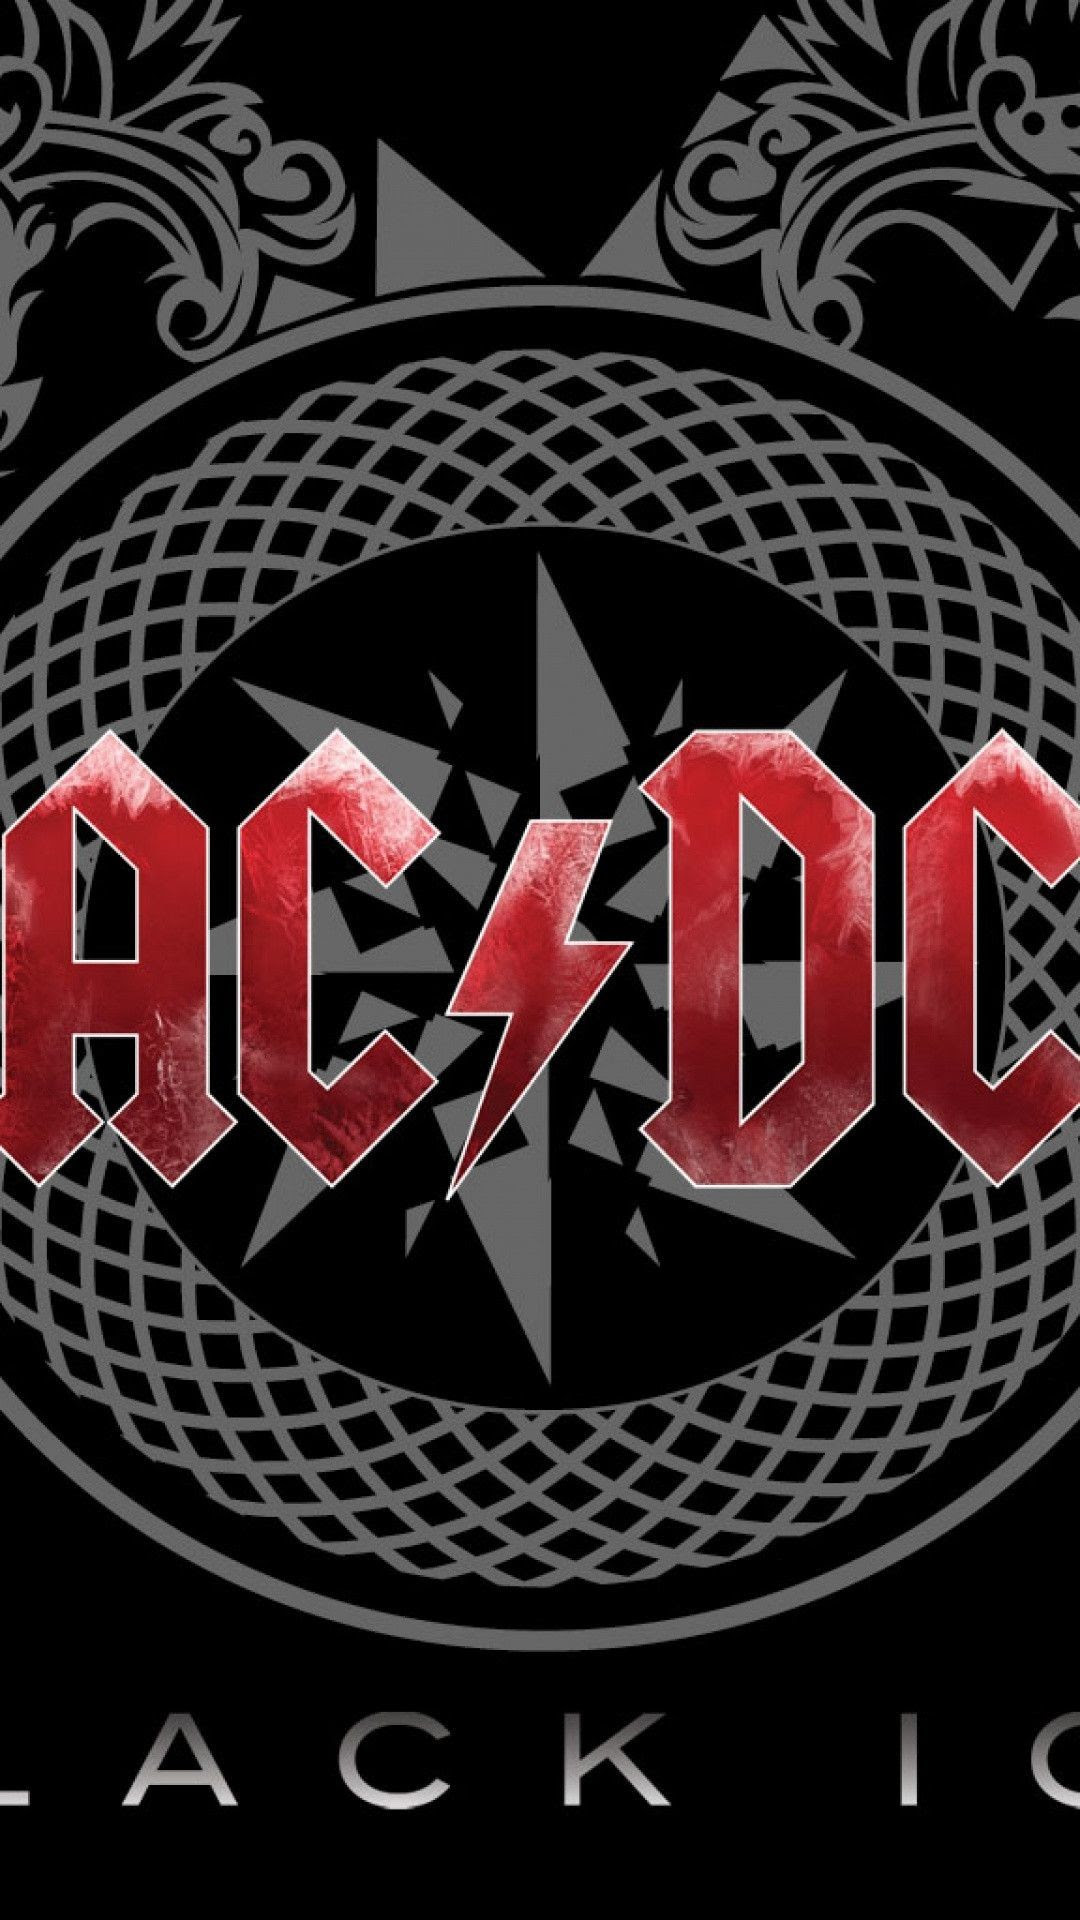 Acdc Wallpaper 62 Images